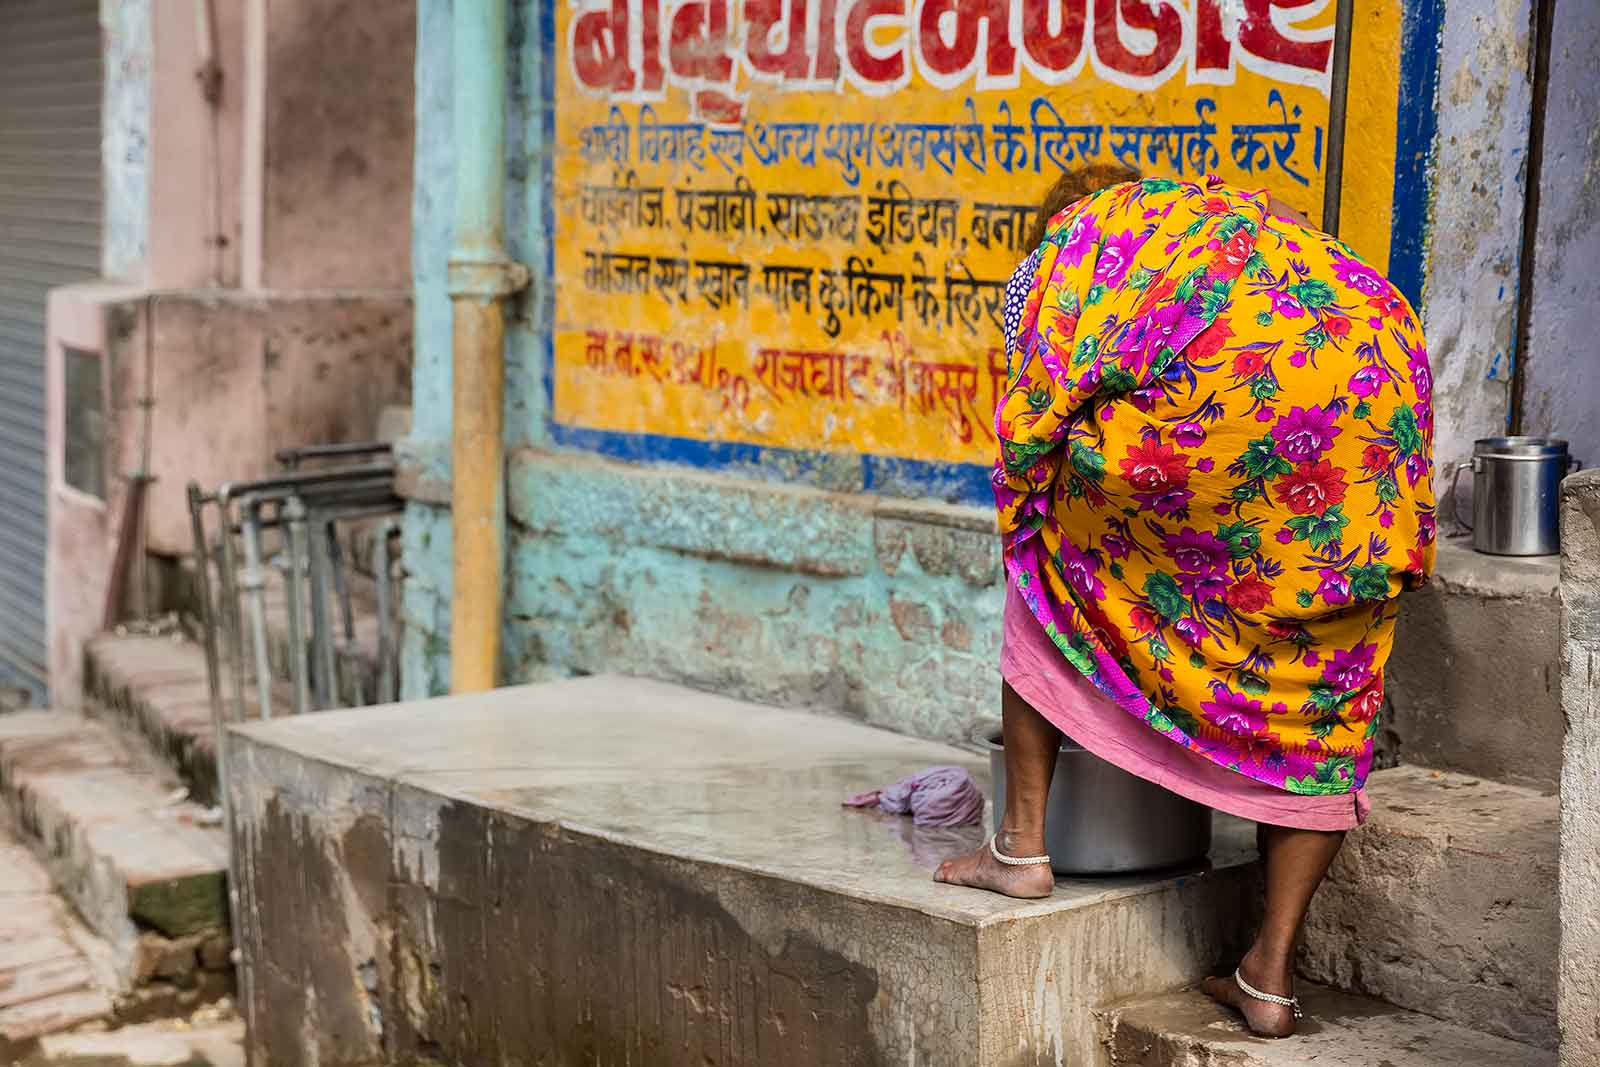 You'll never get enough from walking through the side streets of Varanasi. It's a real colour explosion.